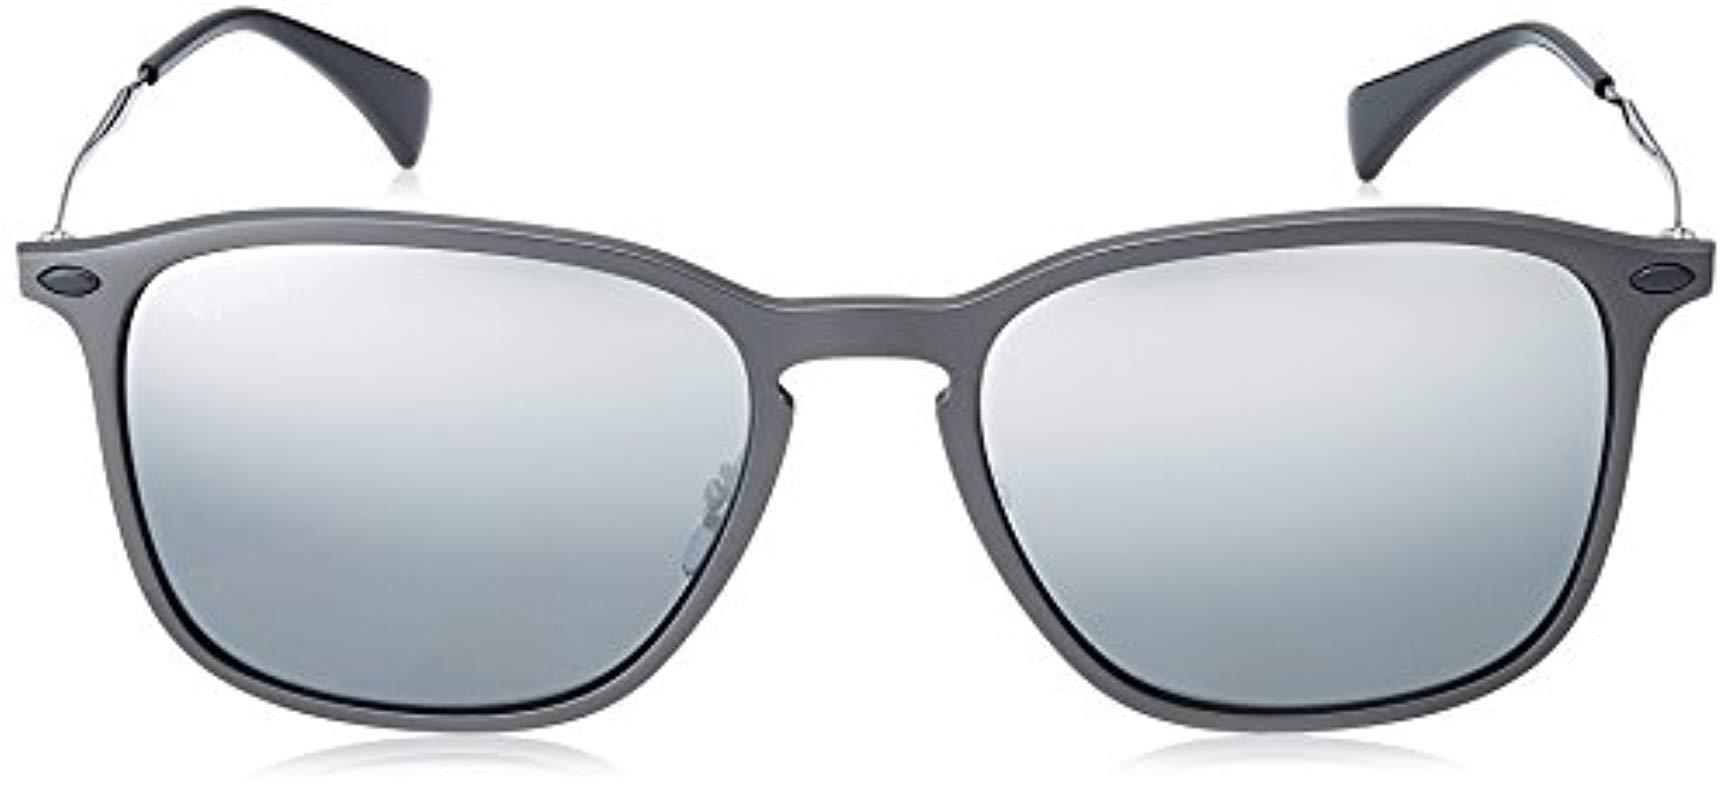 c15eed144a Ray-Ban - Gray Rb8353 Sunglasses - Lyst. View fullscreen